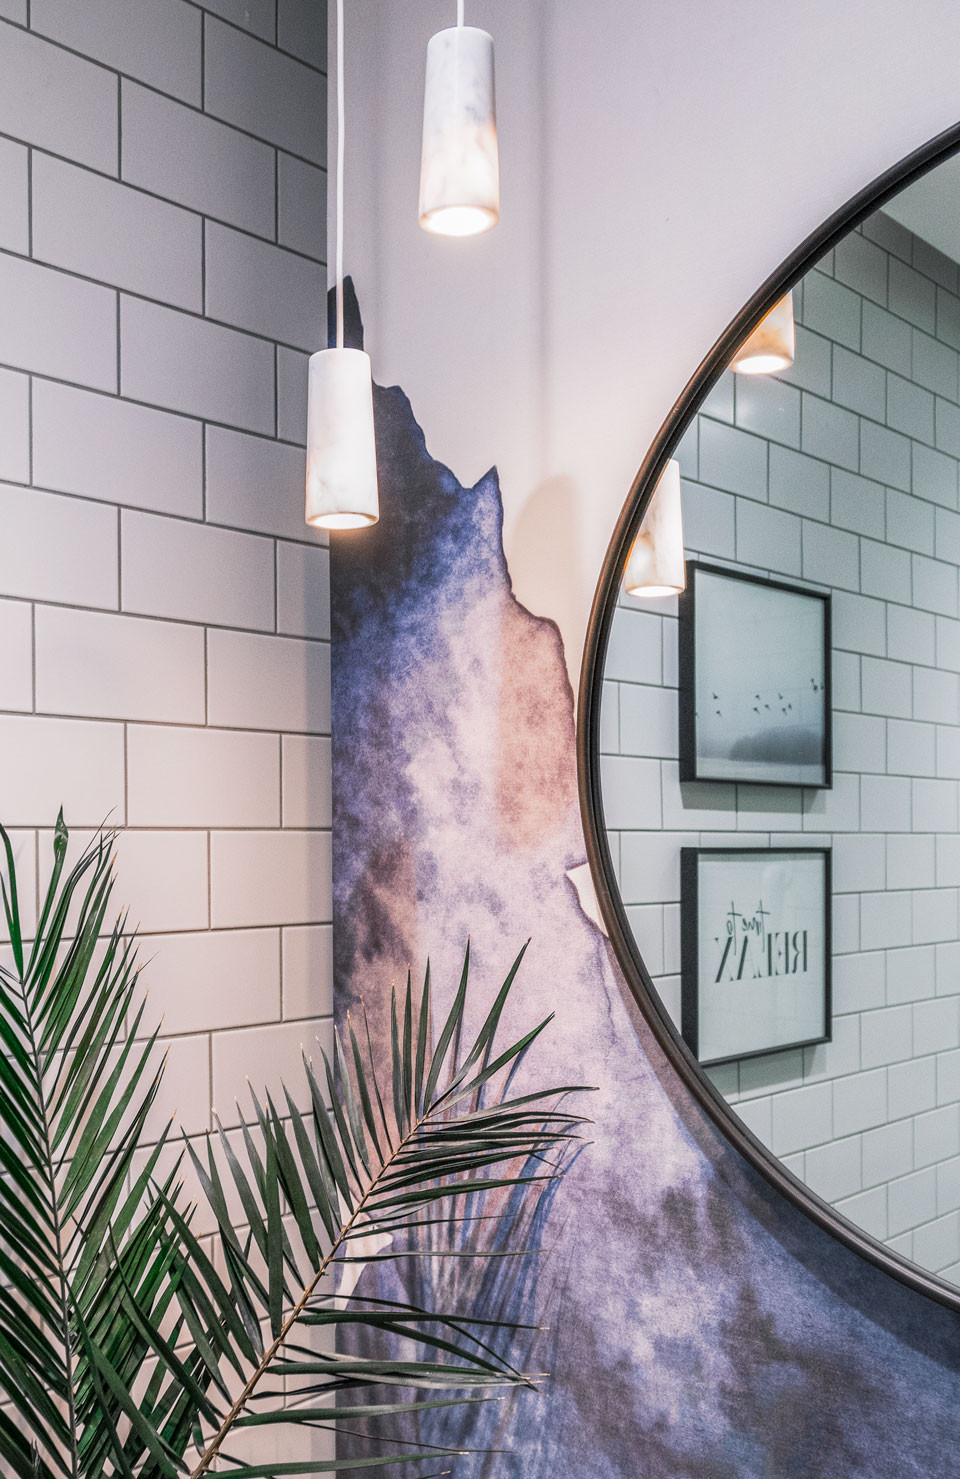 Dental office interior design with a touch of wellbeing, this vanity station at The Banning Dental Group is designed with washed out purple and blue wall colours with a circular charcoal grey framed mirror and a plant for adding nature elements into design